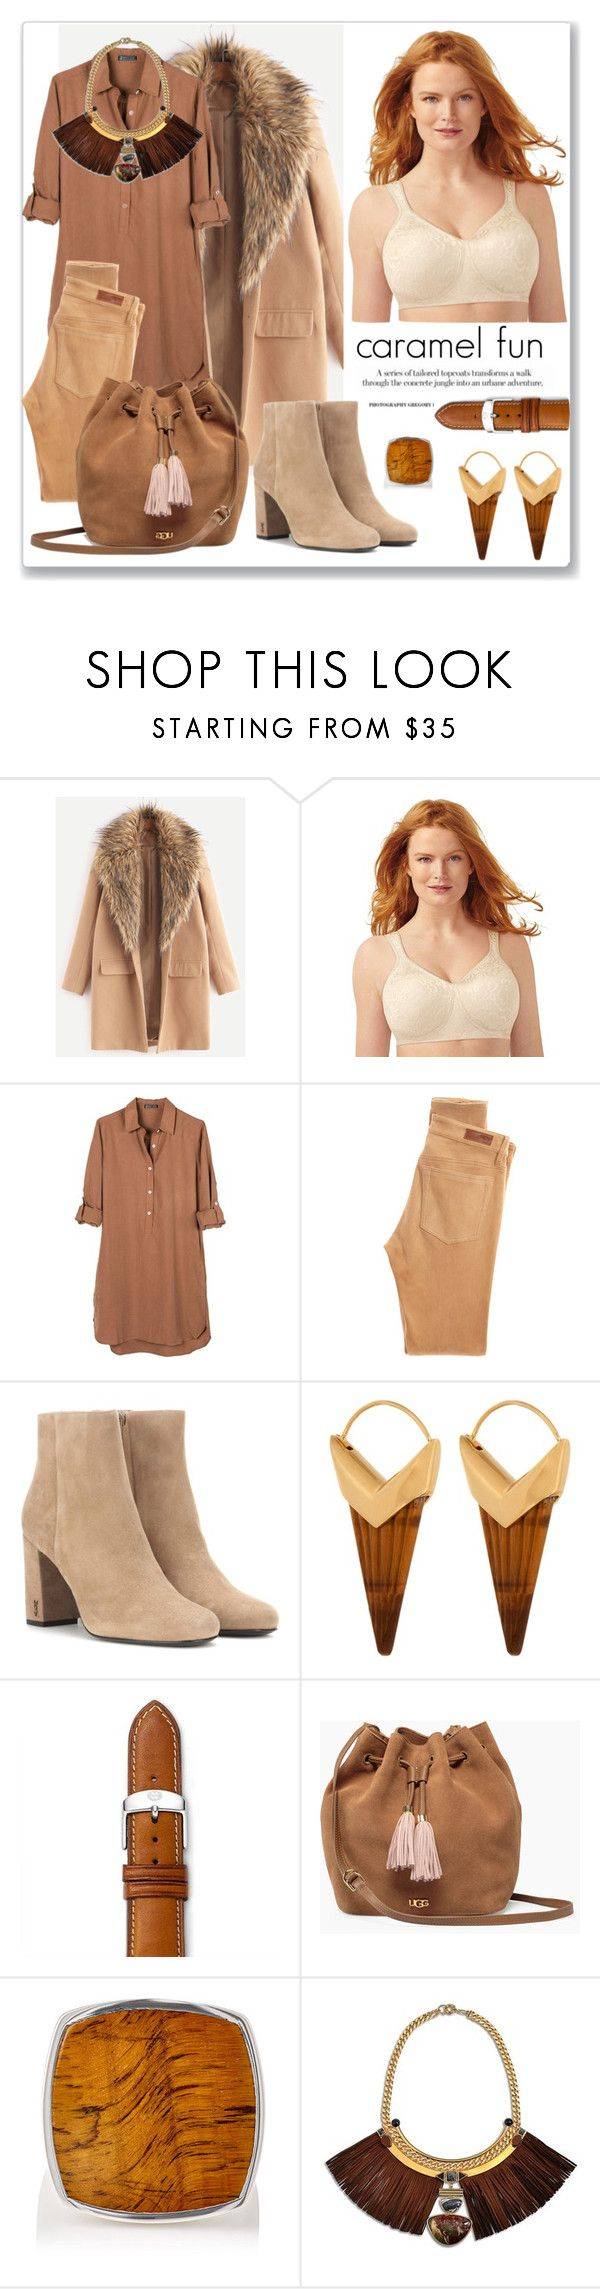 """necklace"" by mariarty ❤ liked on Polyvore featuring Playtex, United by Blue, AG Adriano Goldschmied, Yves Saint Laurent, Theodora Warre, Michele, UGG, Tom Wood and Natalie Waldman"